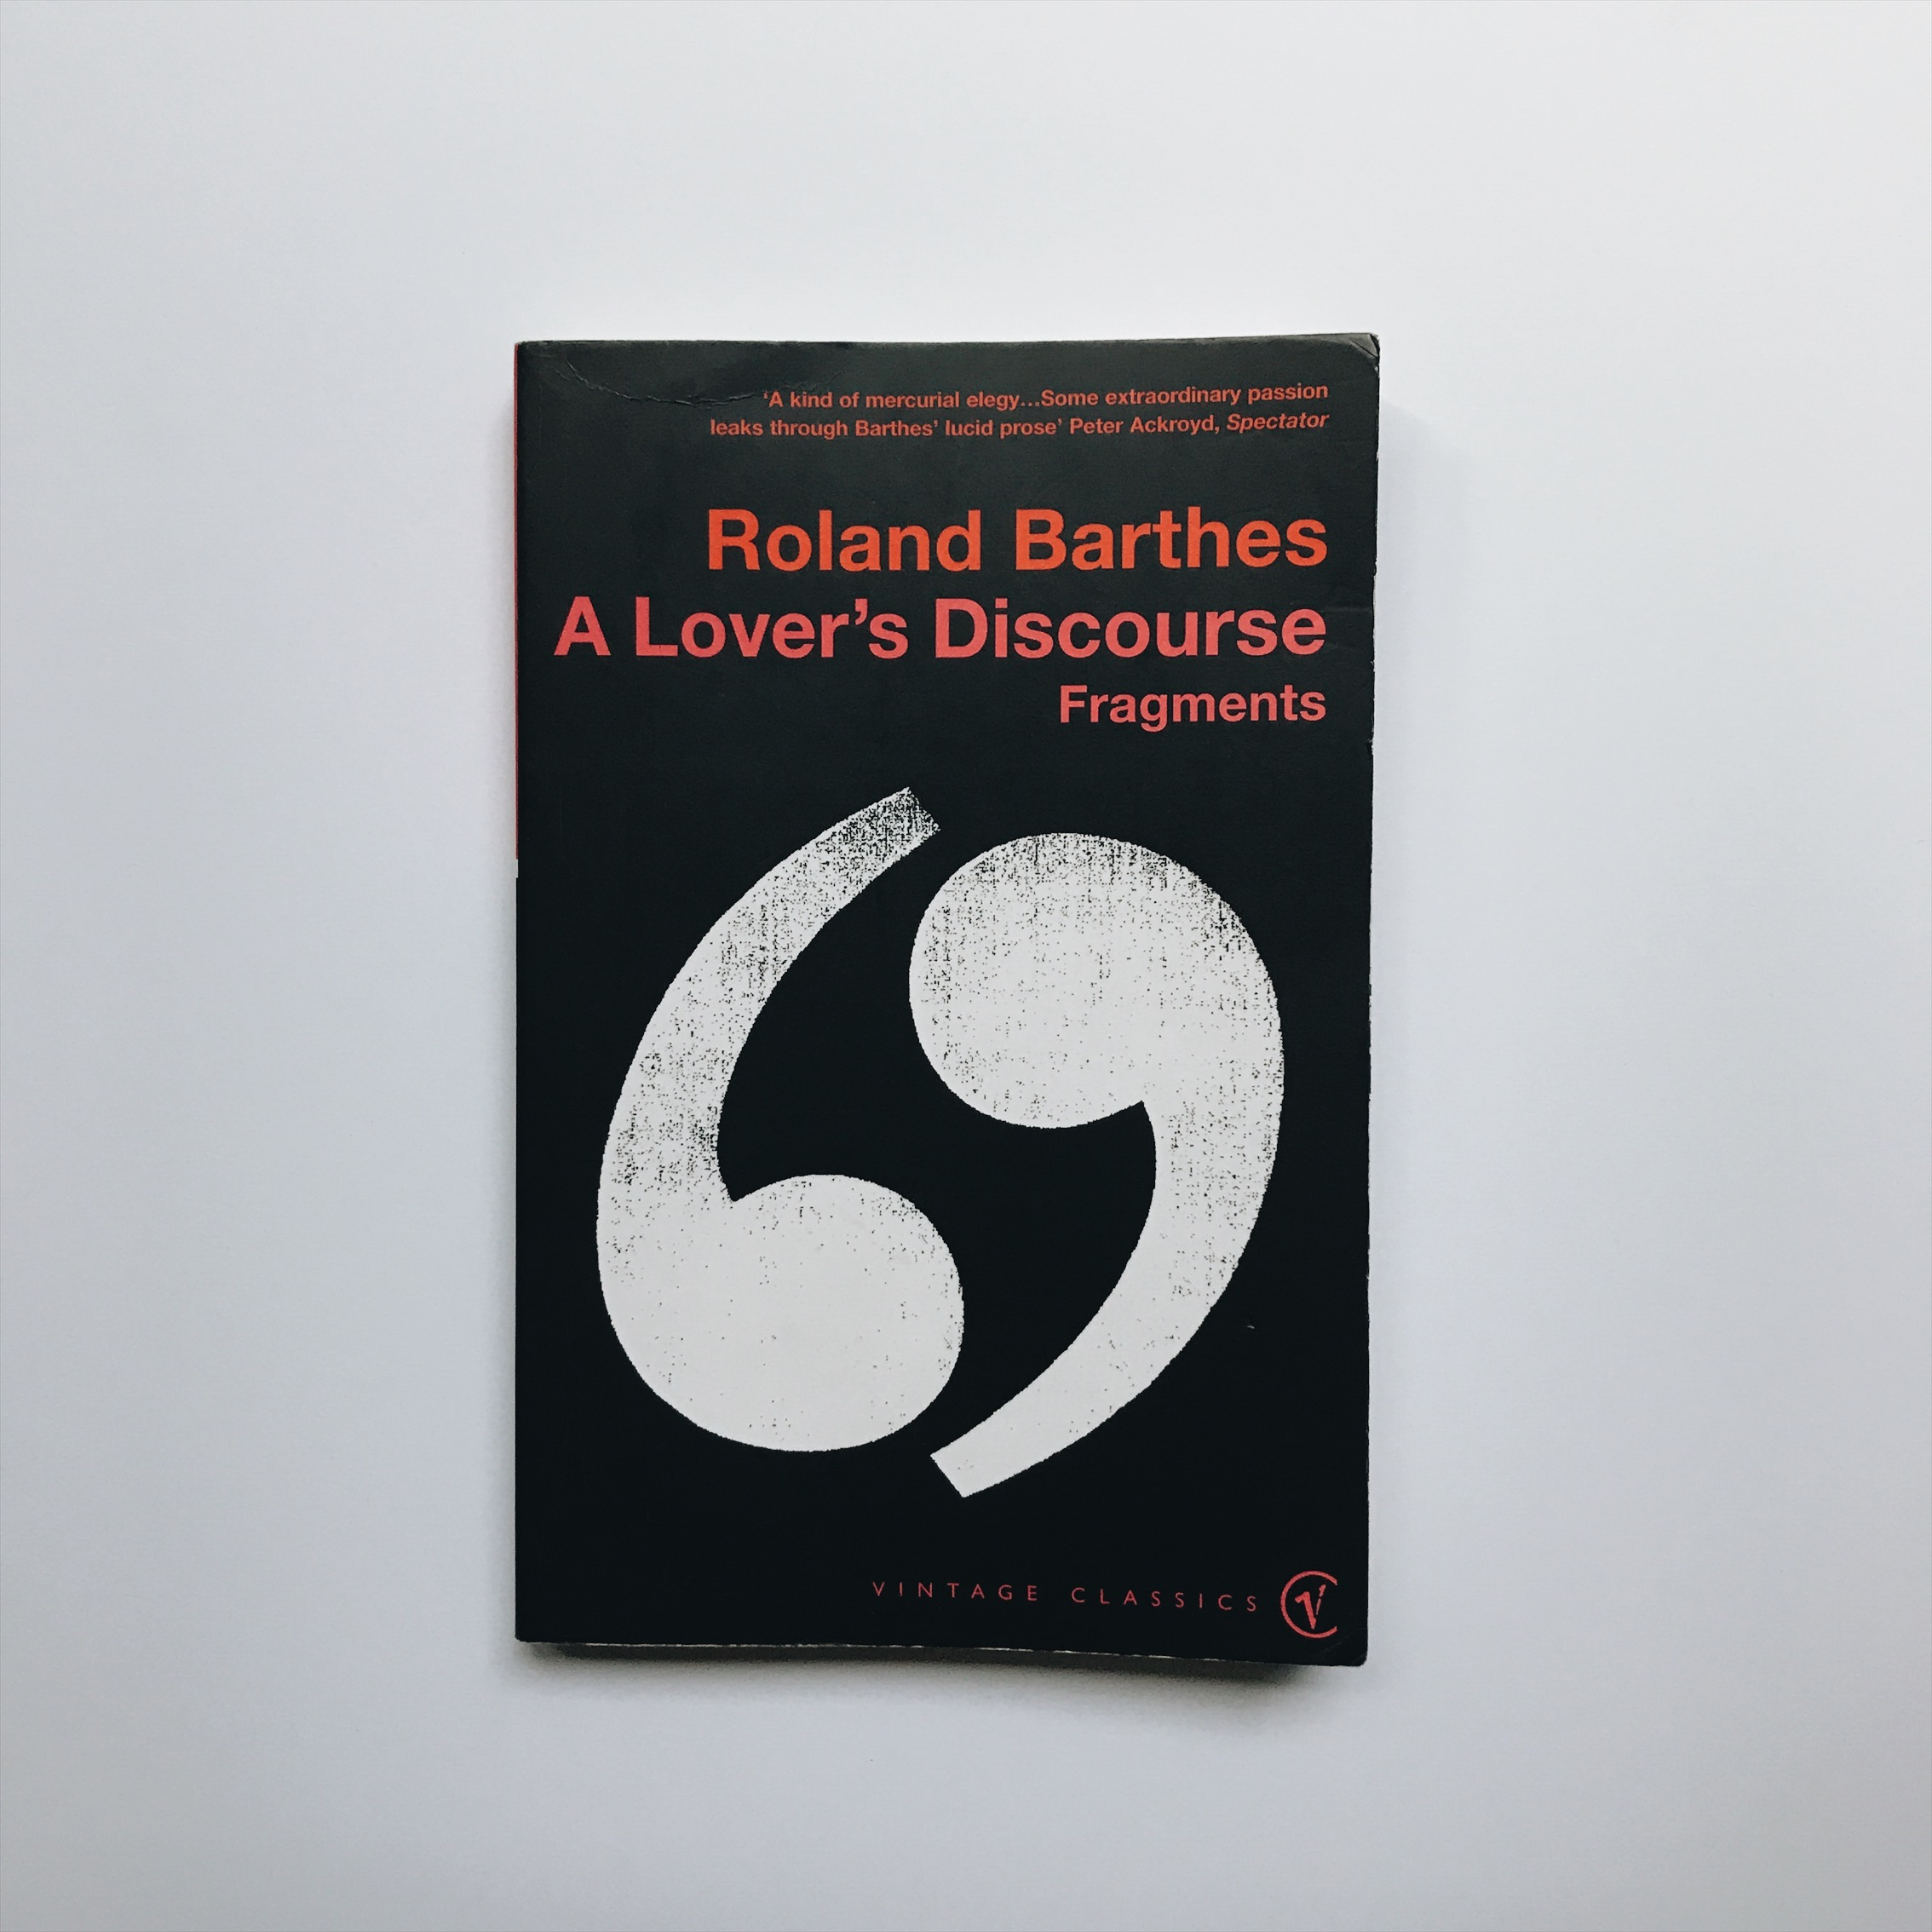 6 A Lover's Discourse by Roland Barthes.JPG